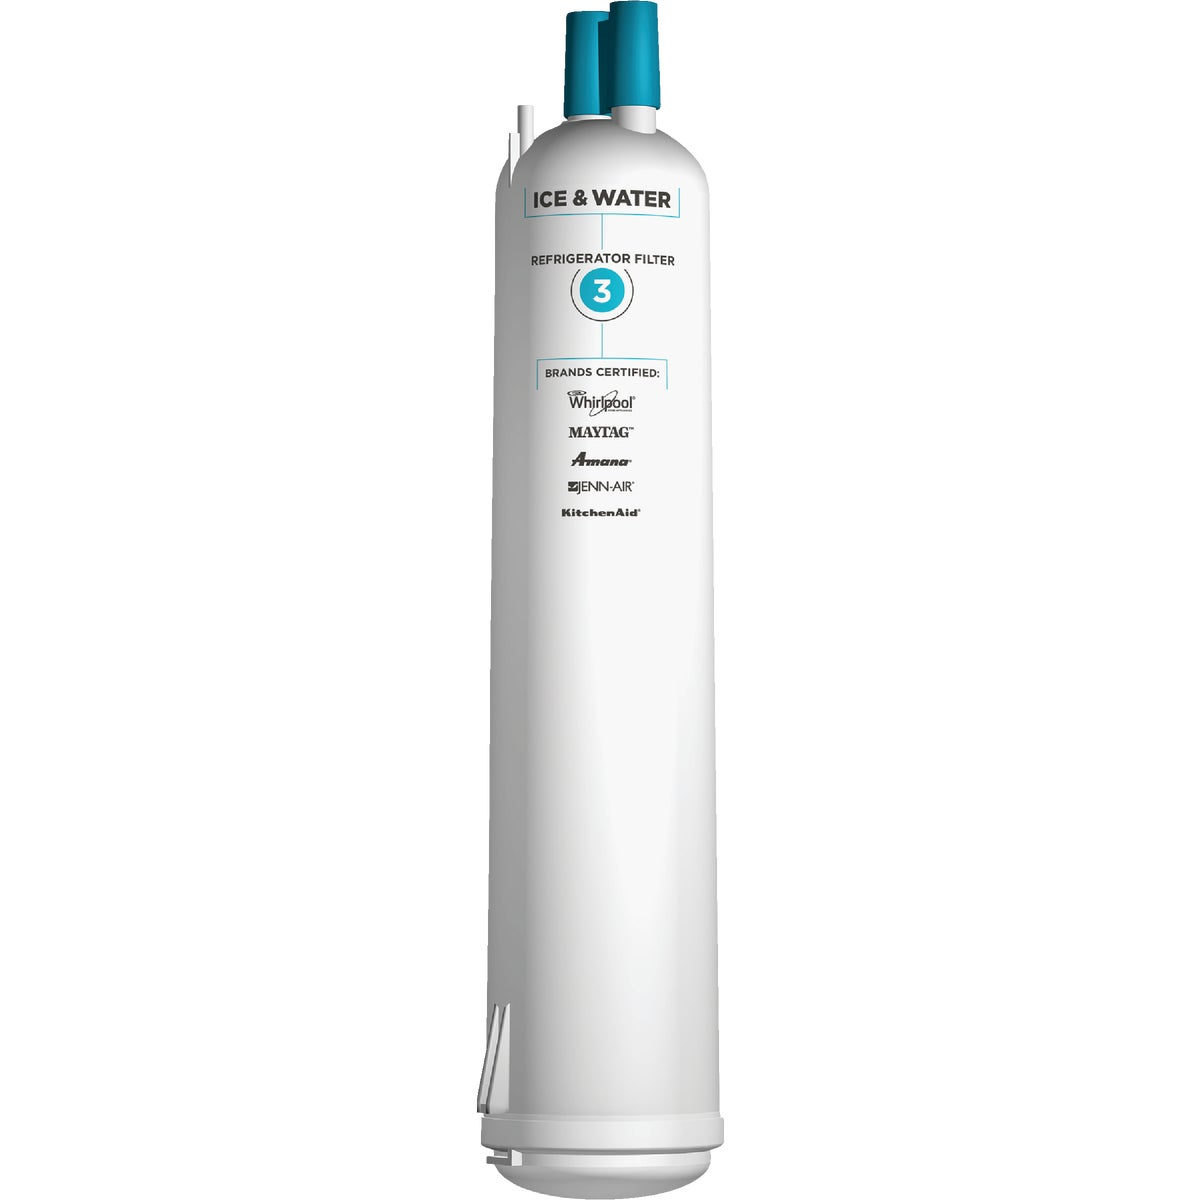 EveryDrop by Whirlpool Filter 3 Icemaker & Refrigerator Water Filter Cartridge, EDR3RXD1